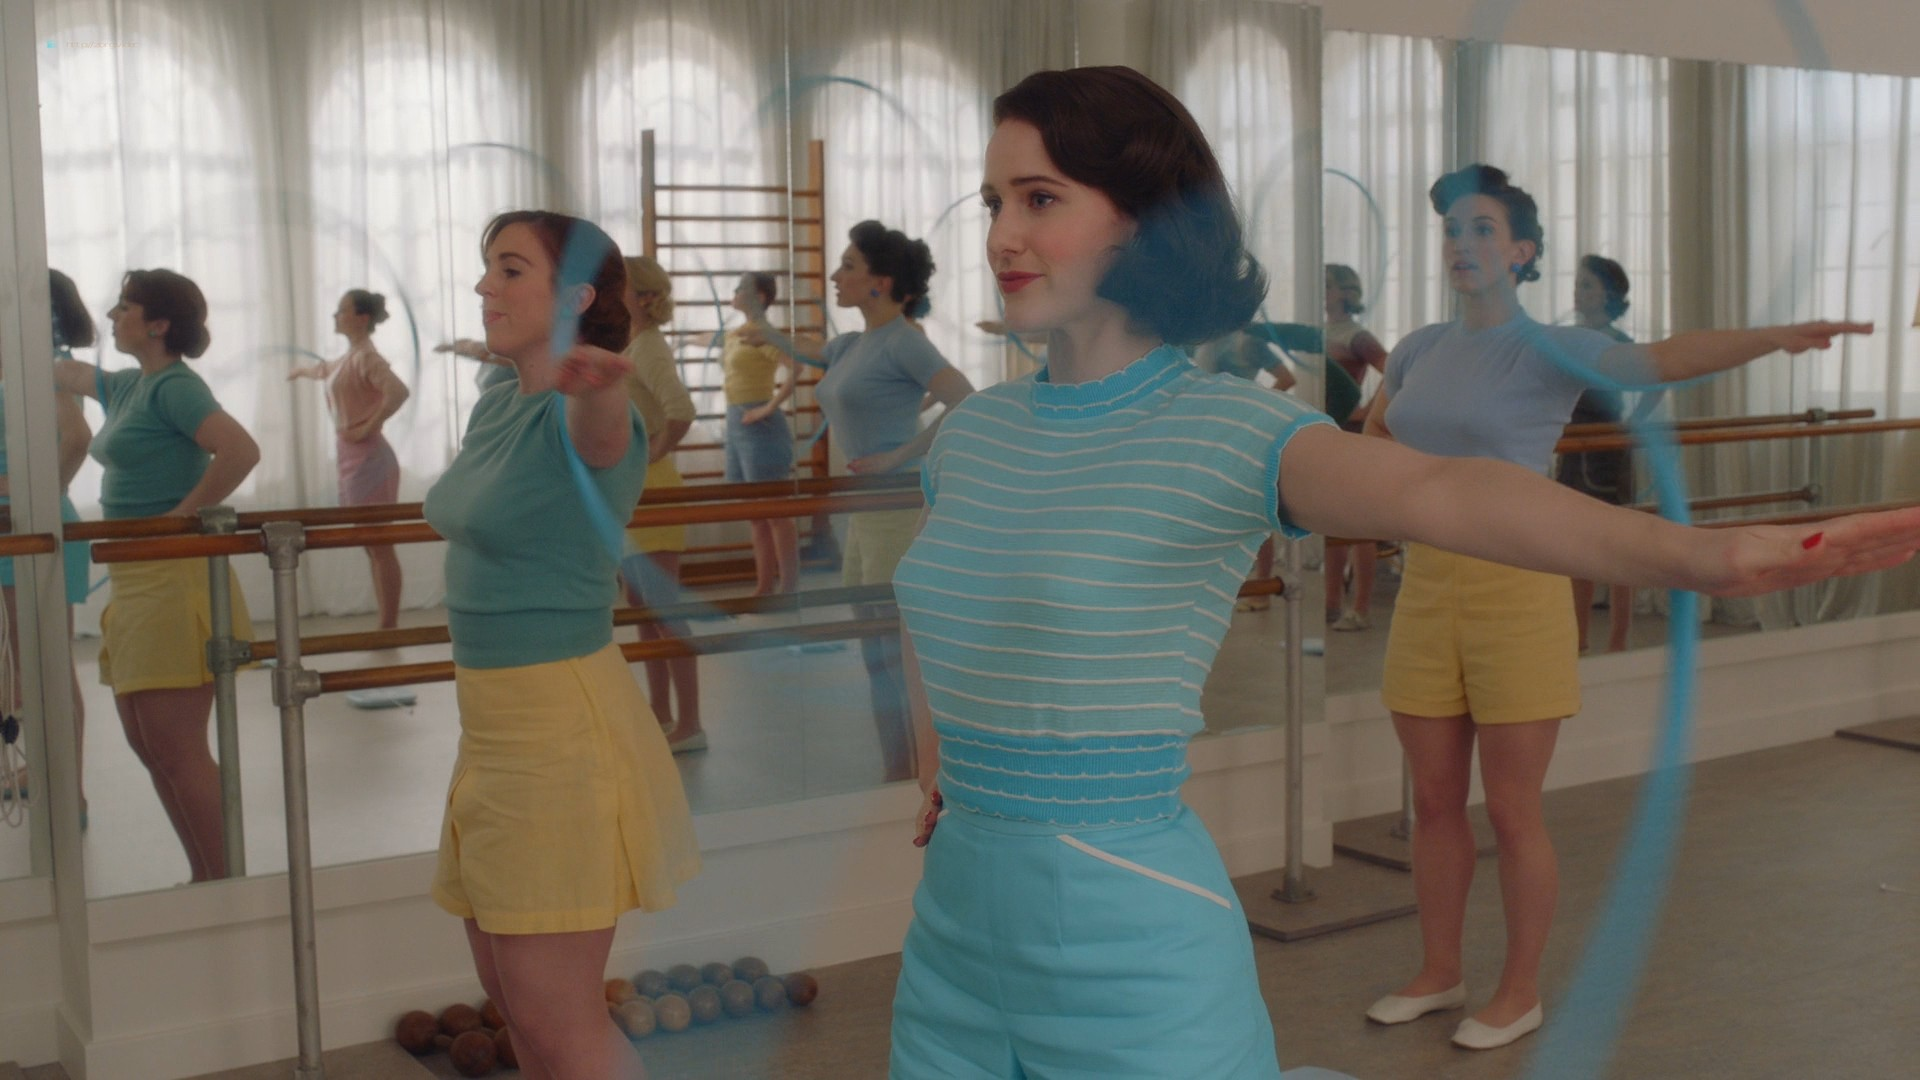 Rachel Brosnahan hot and sexy - The Marvelous Mrs. Maisel (2019) S3 HD 1080p (9)